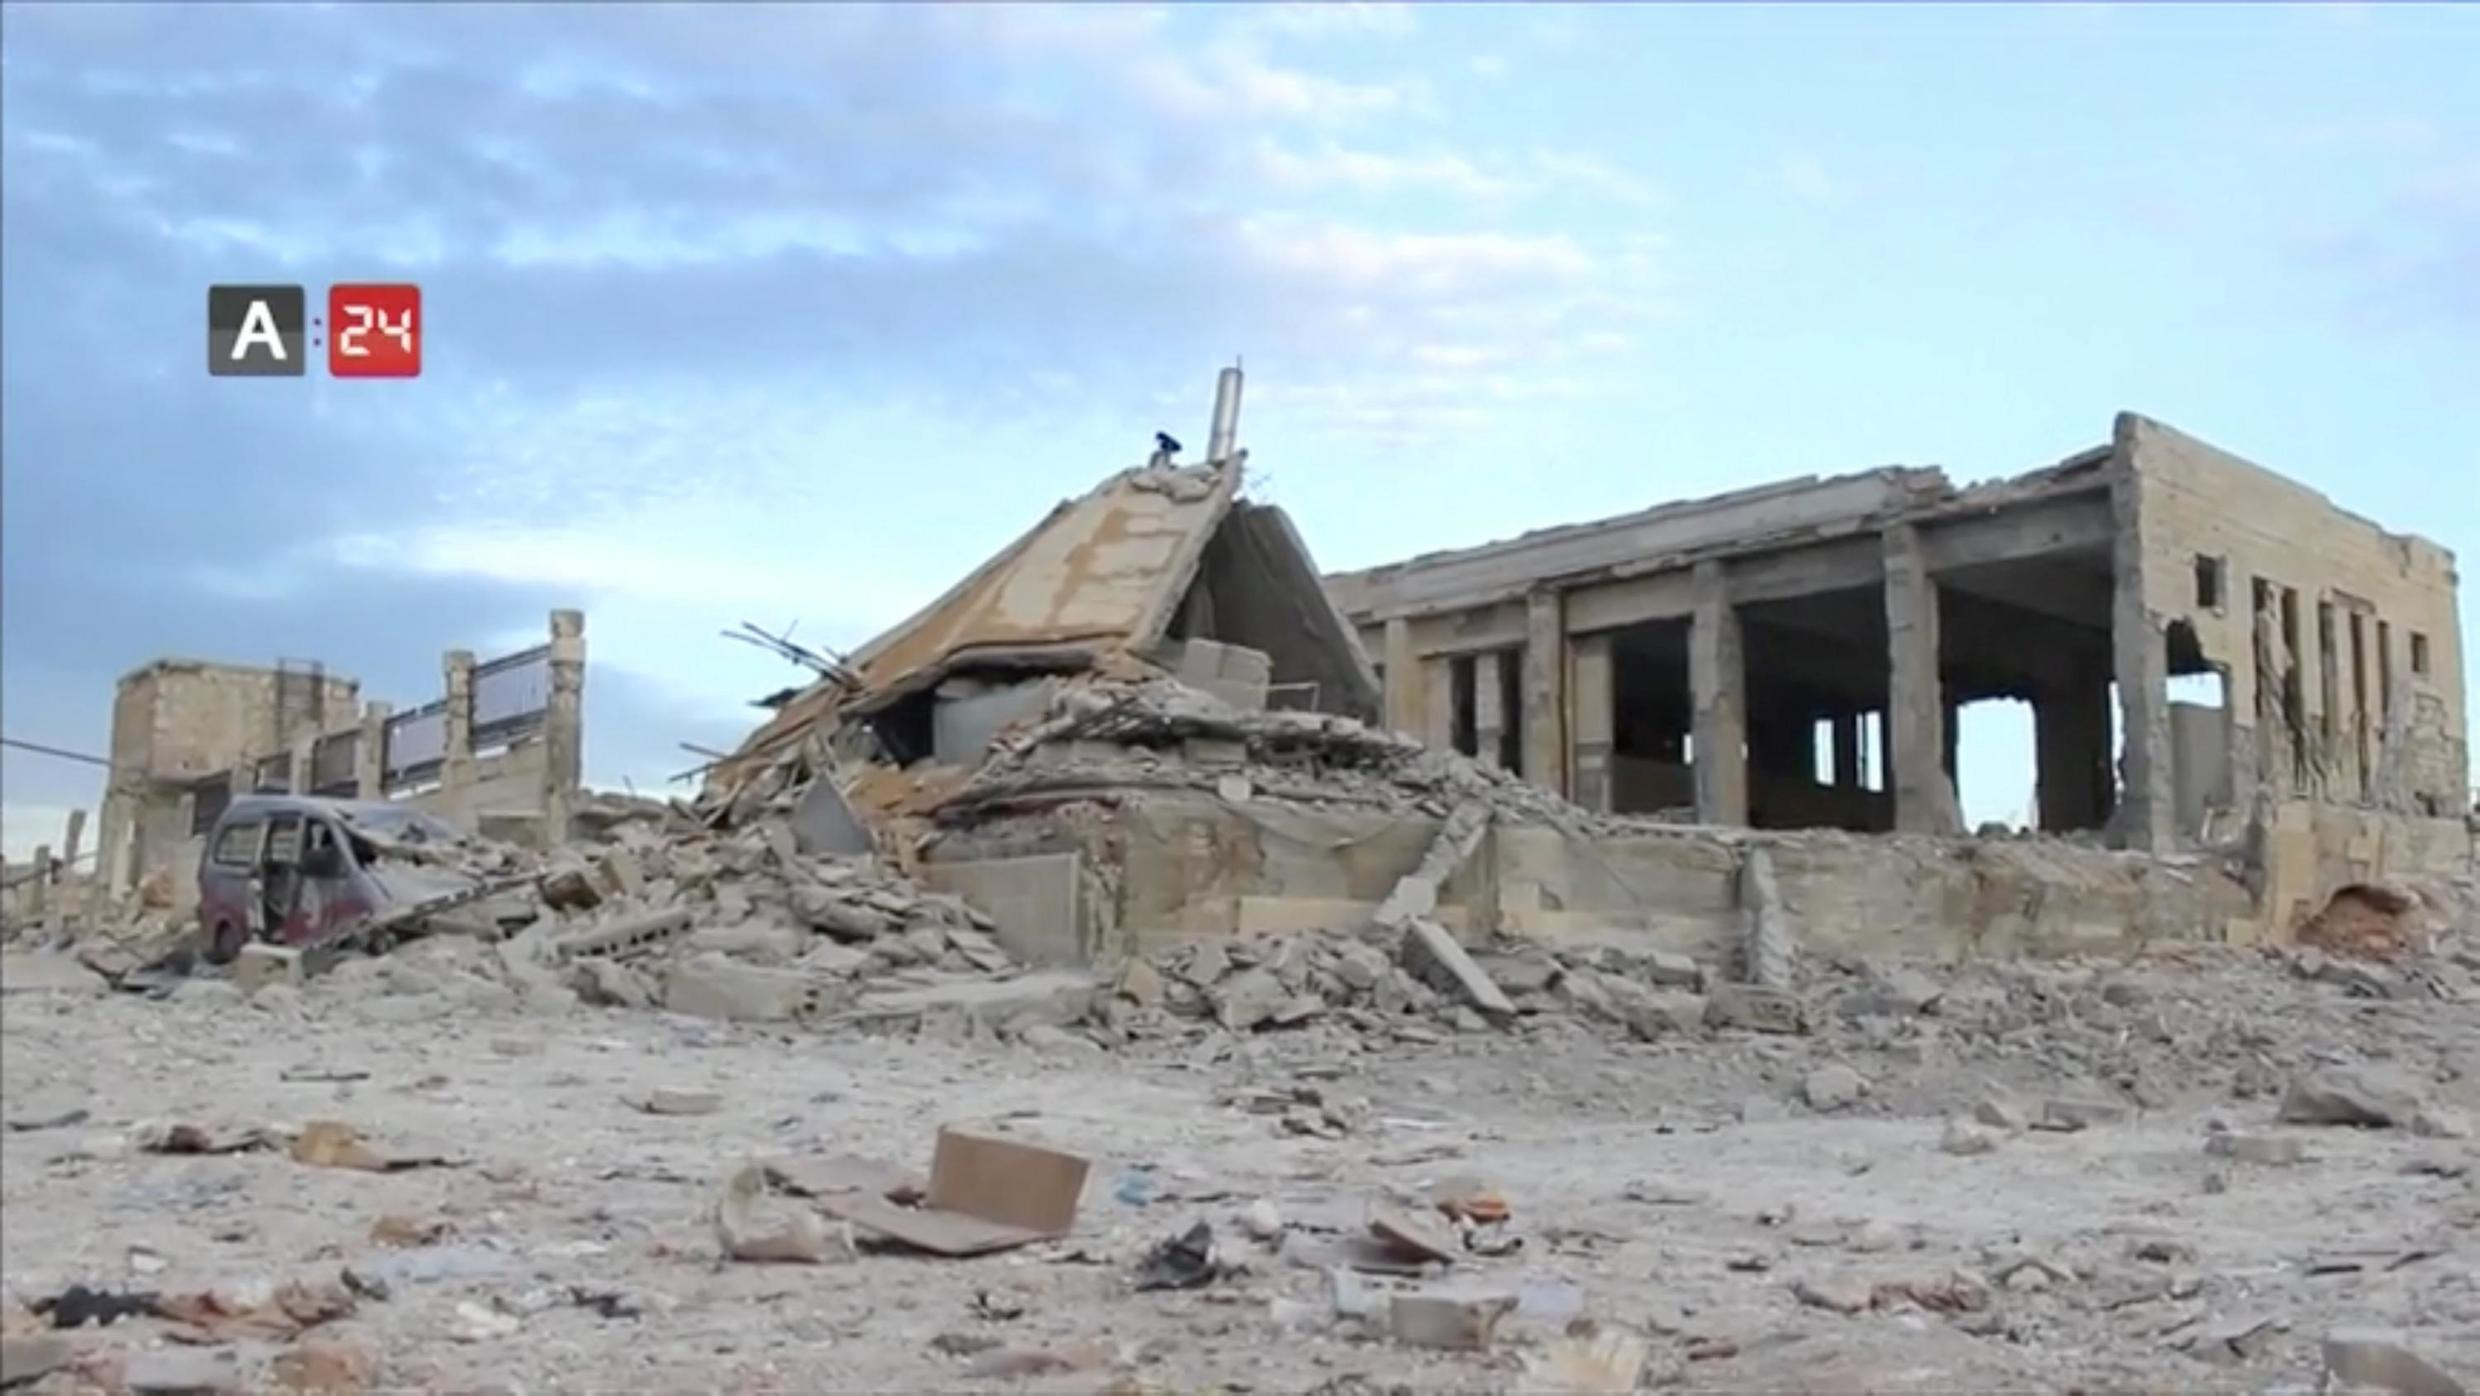 The destroyed building of Nabd Al-Hayat hospital that was hit by an air strike is seen in Hass, Idlib province, Syria May 6, 2019